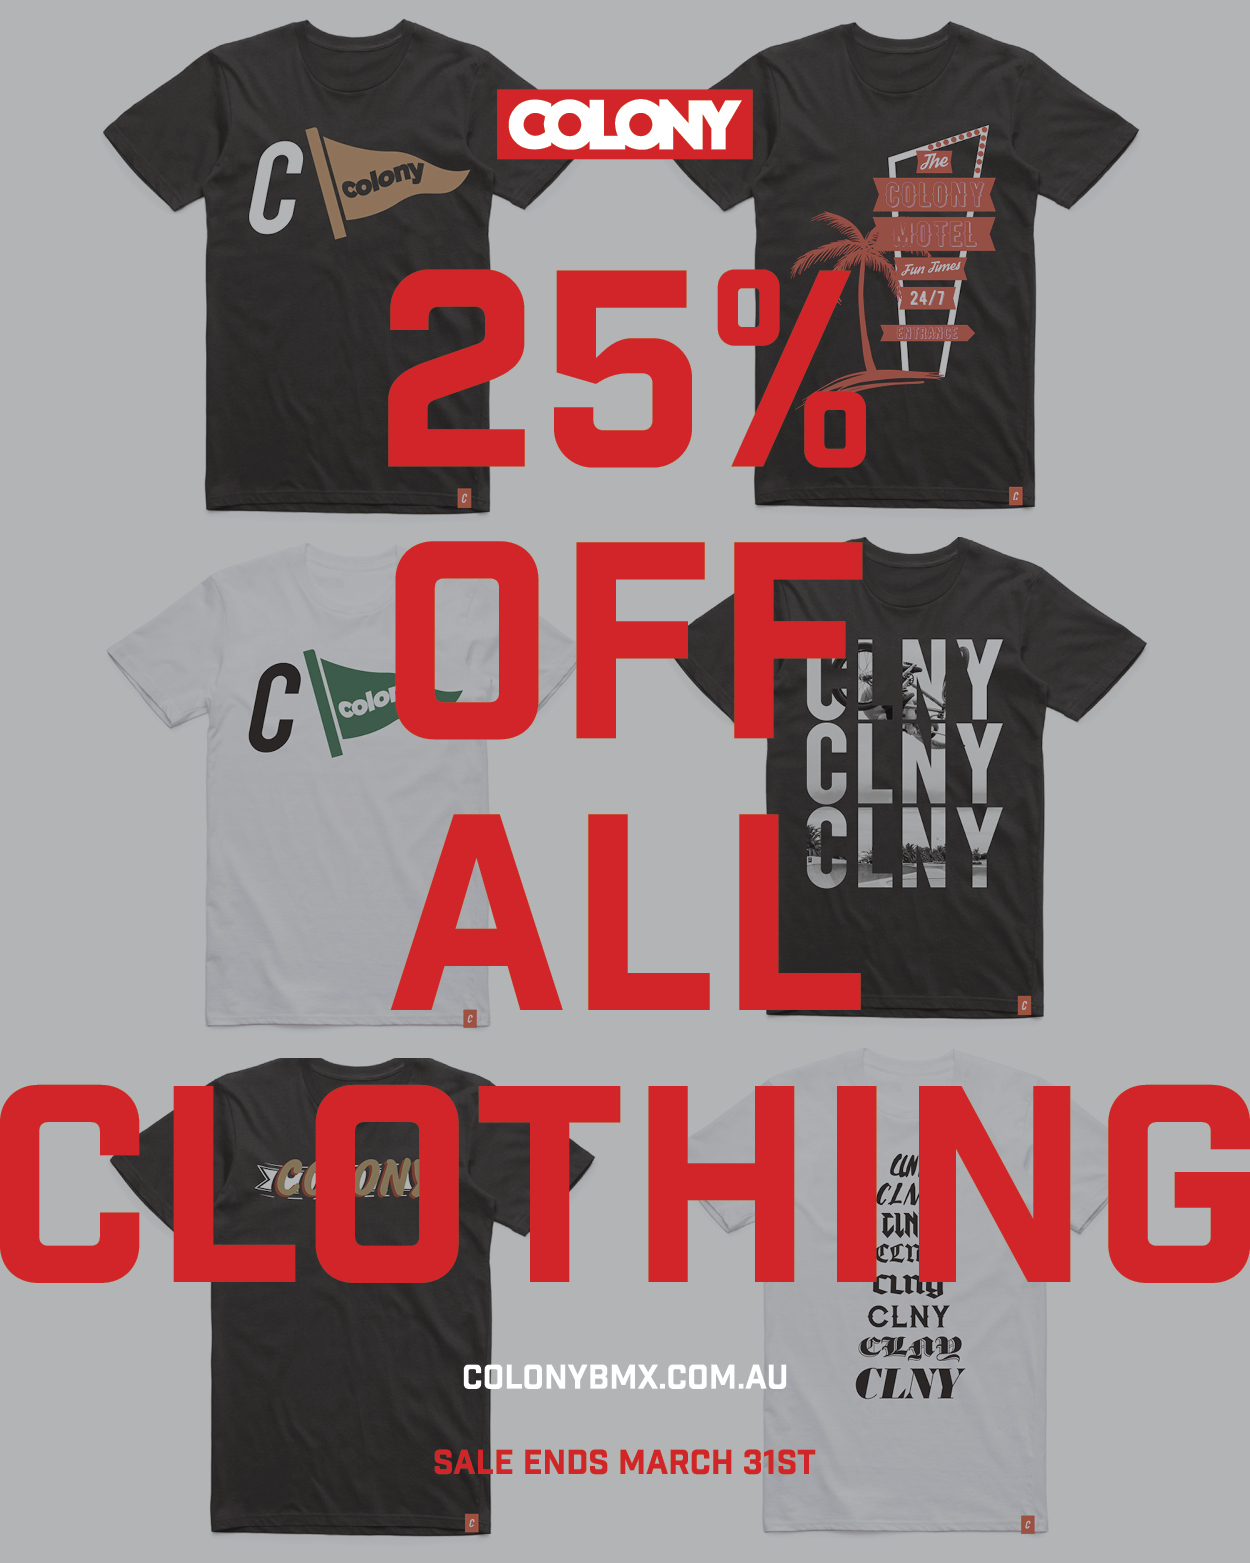 colony bmx clothing sale